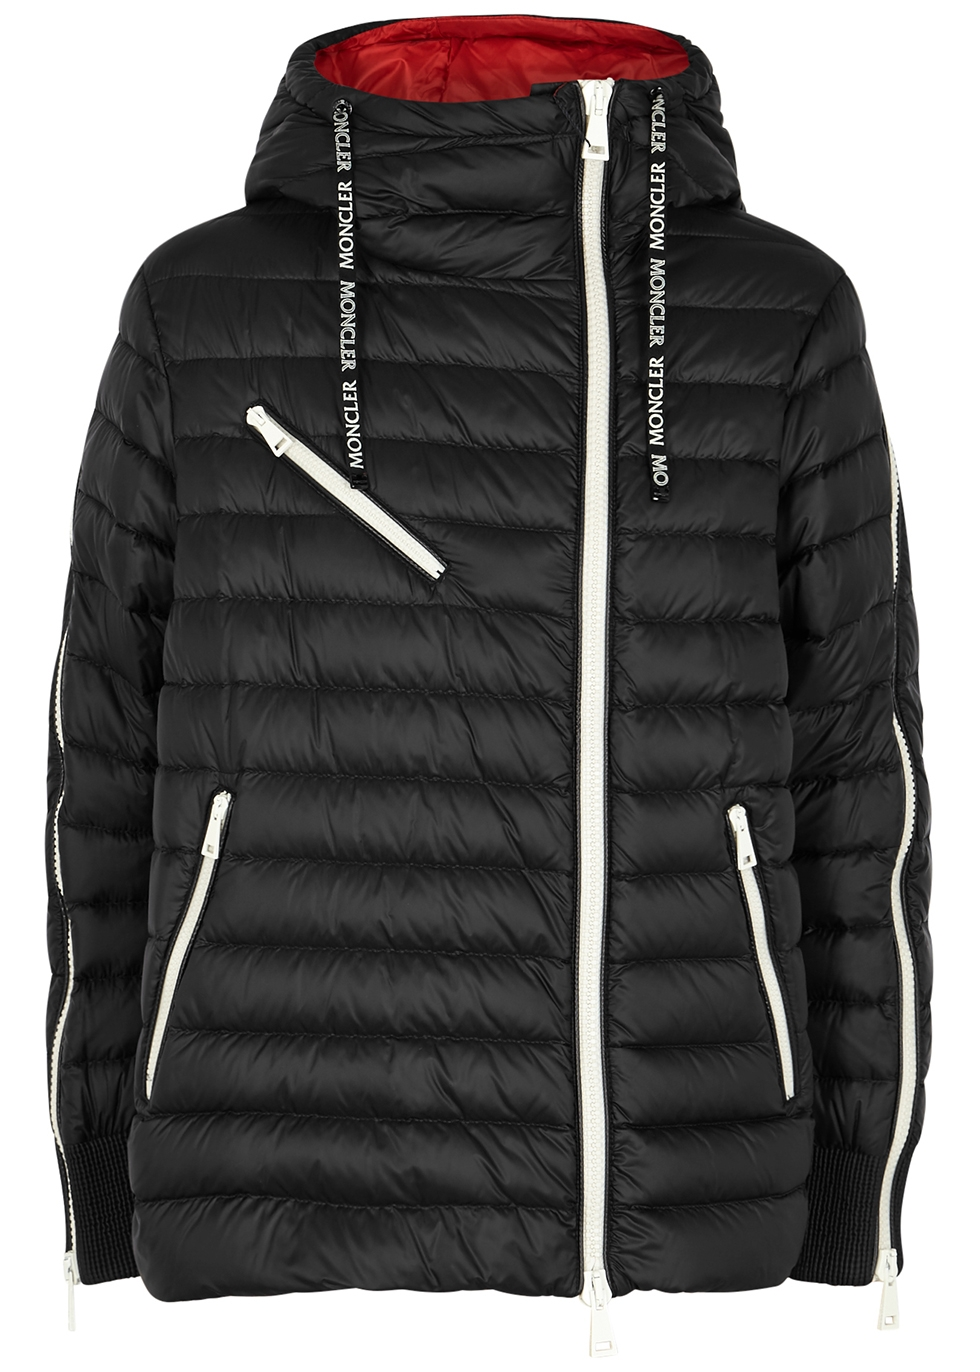 Stockholm hooded shell jacket